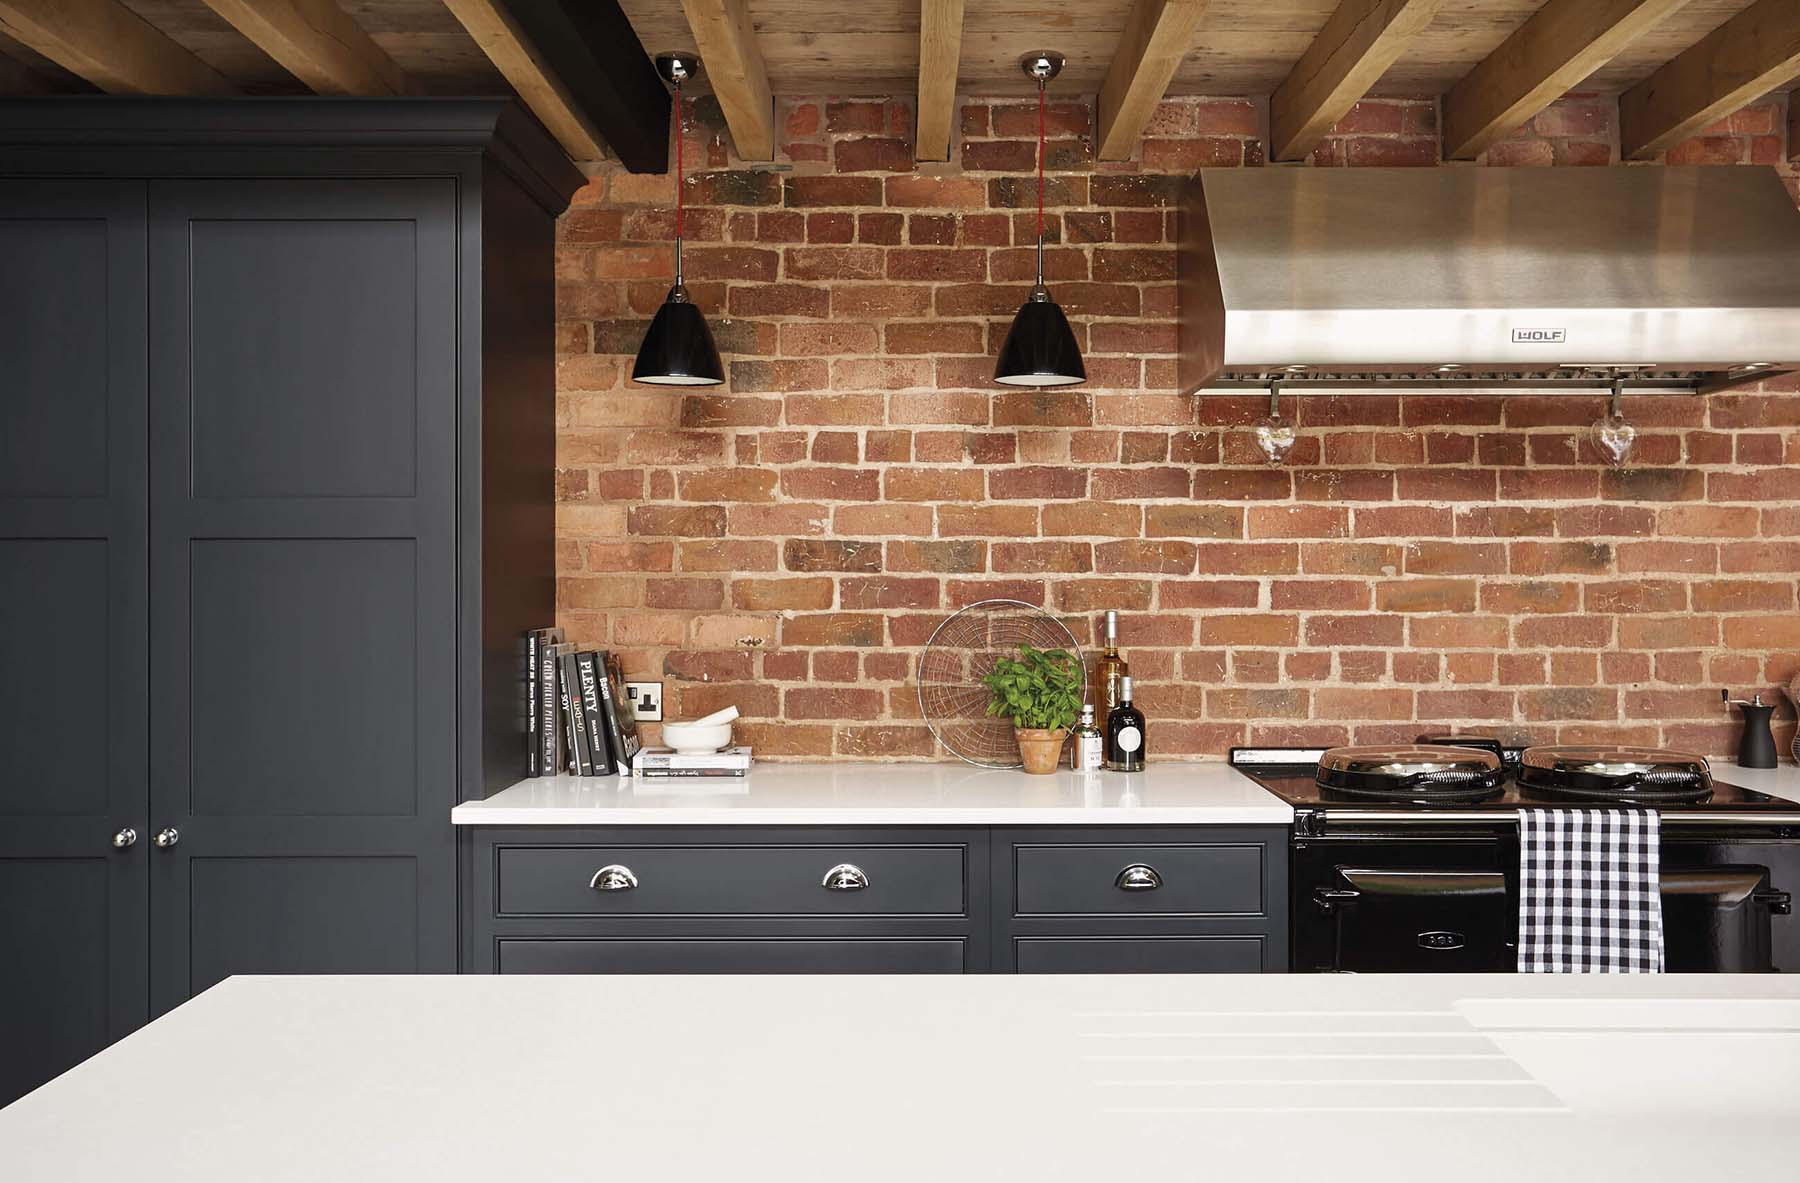 Dark gray kitchen cabinets with white stone countertops and a red brick wall. Antique style black stove with a stainless steel hood.